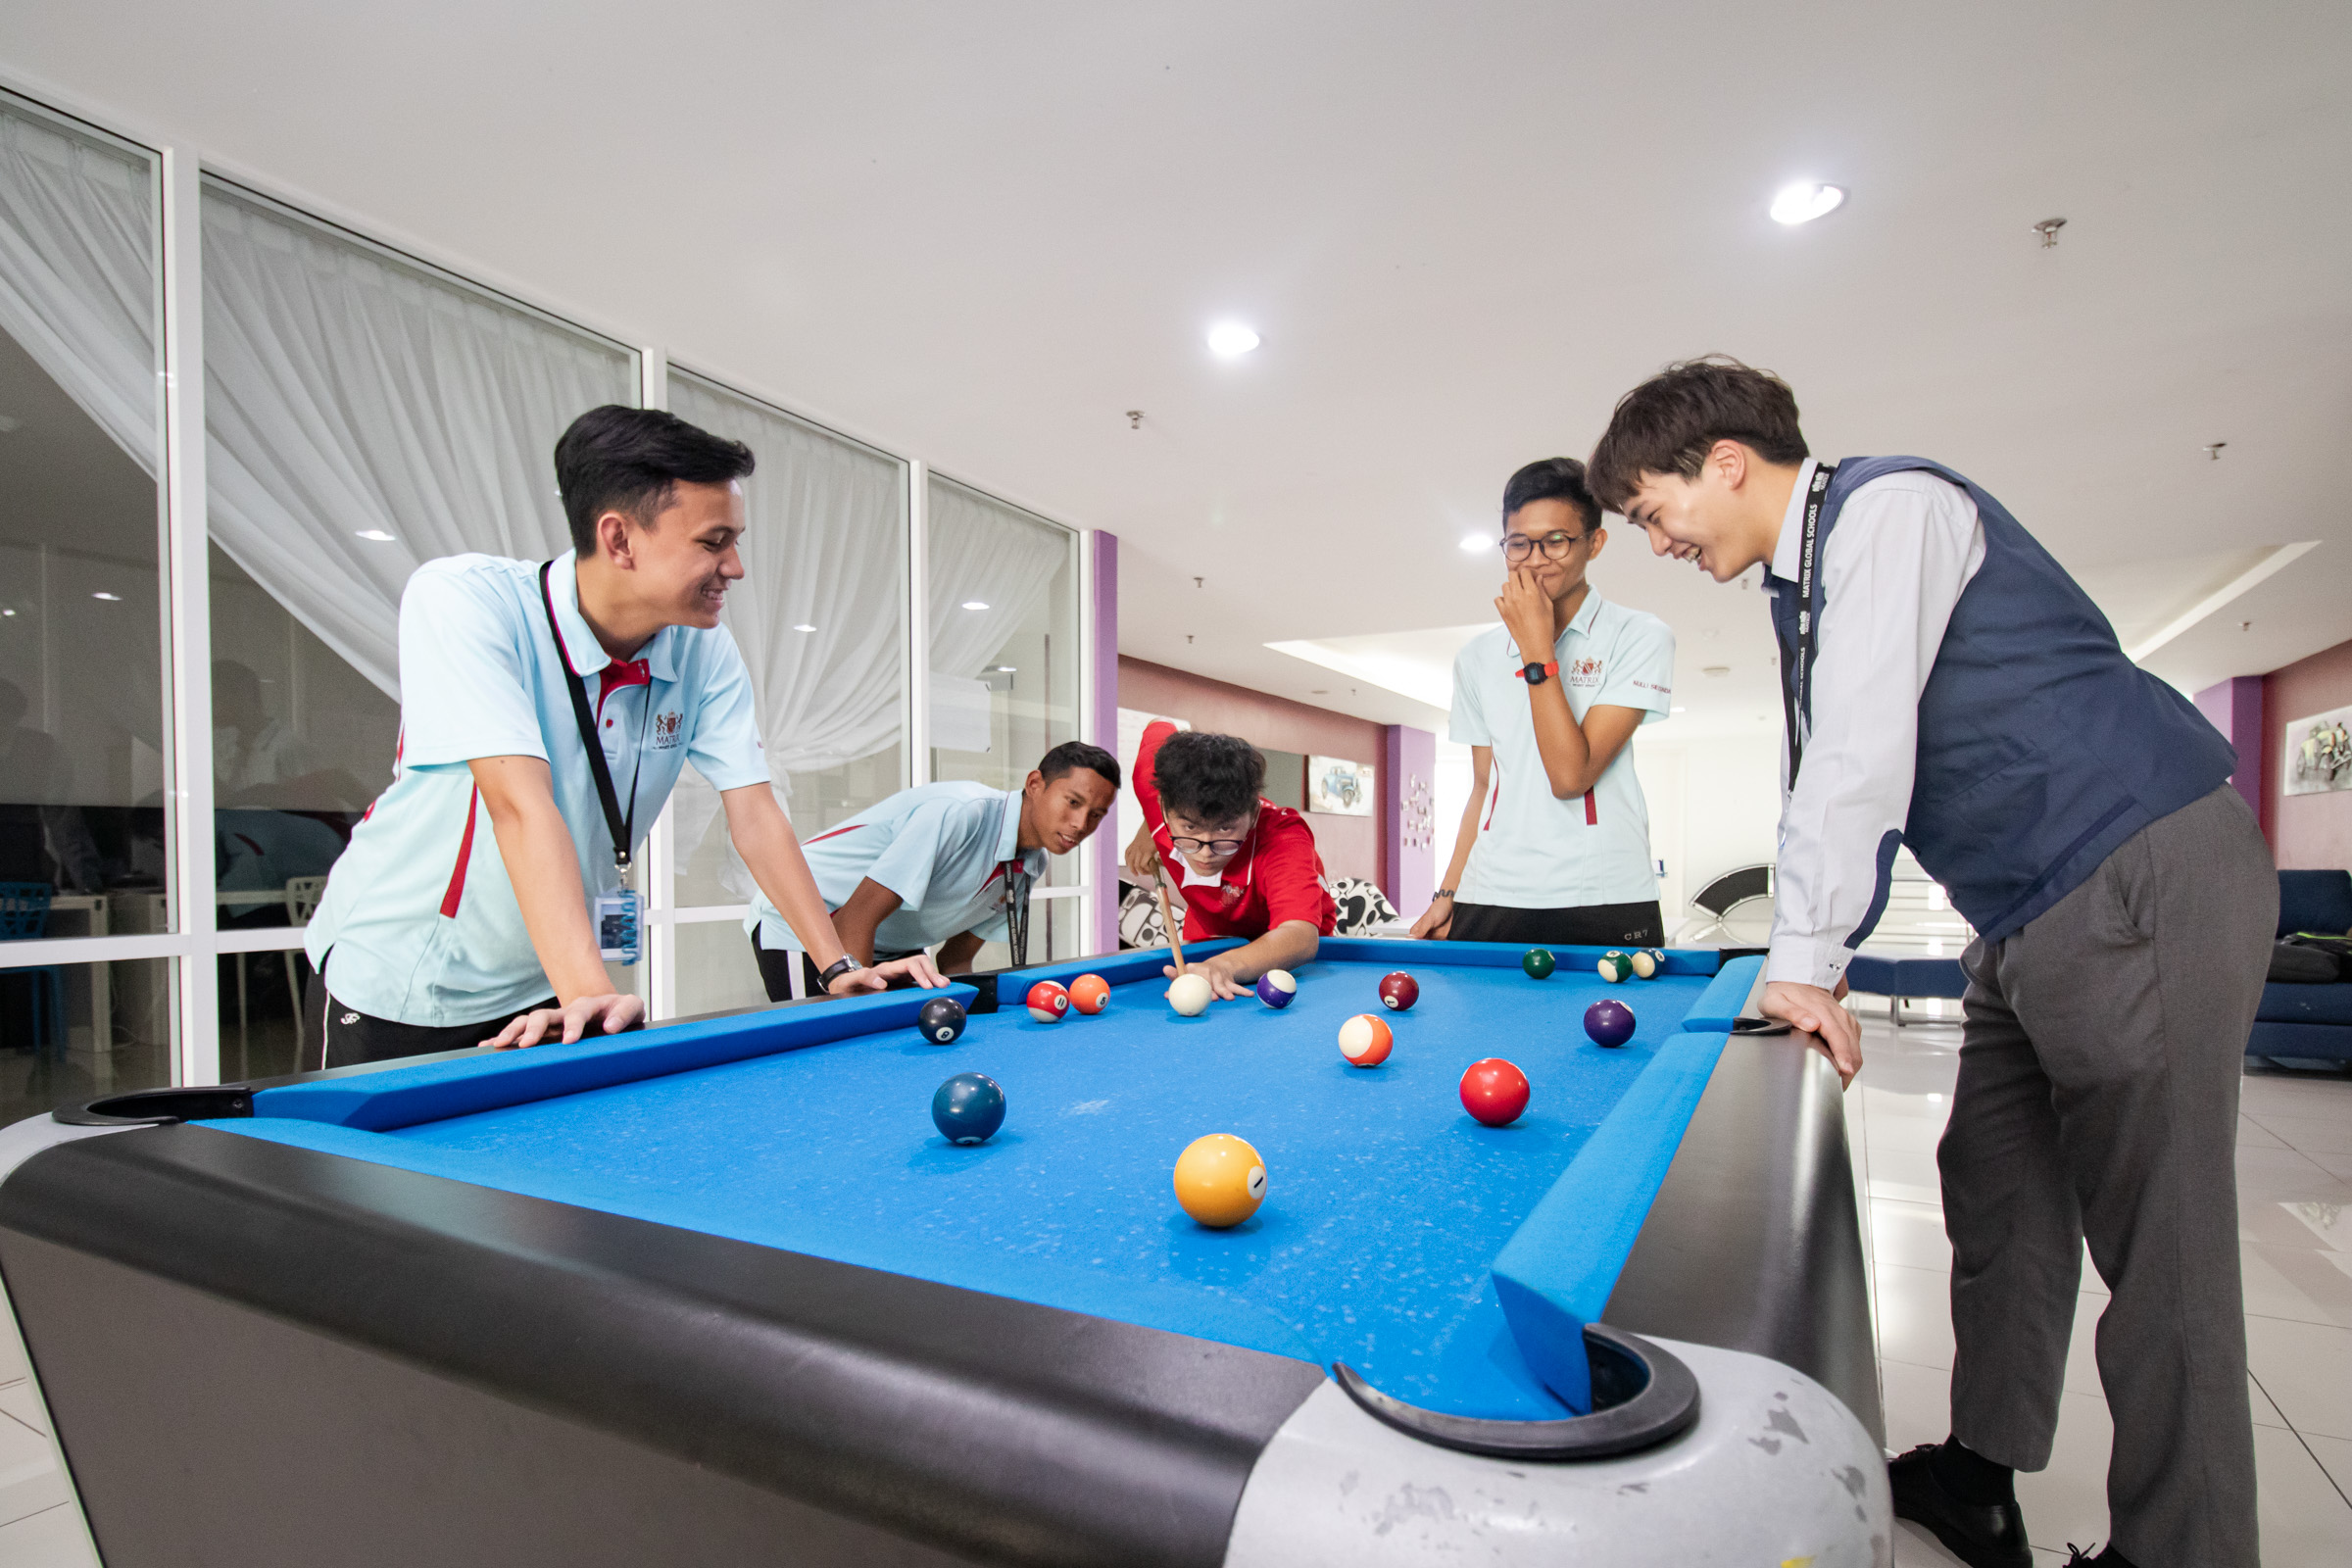 a group of students playing pool at snooker gameroom